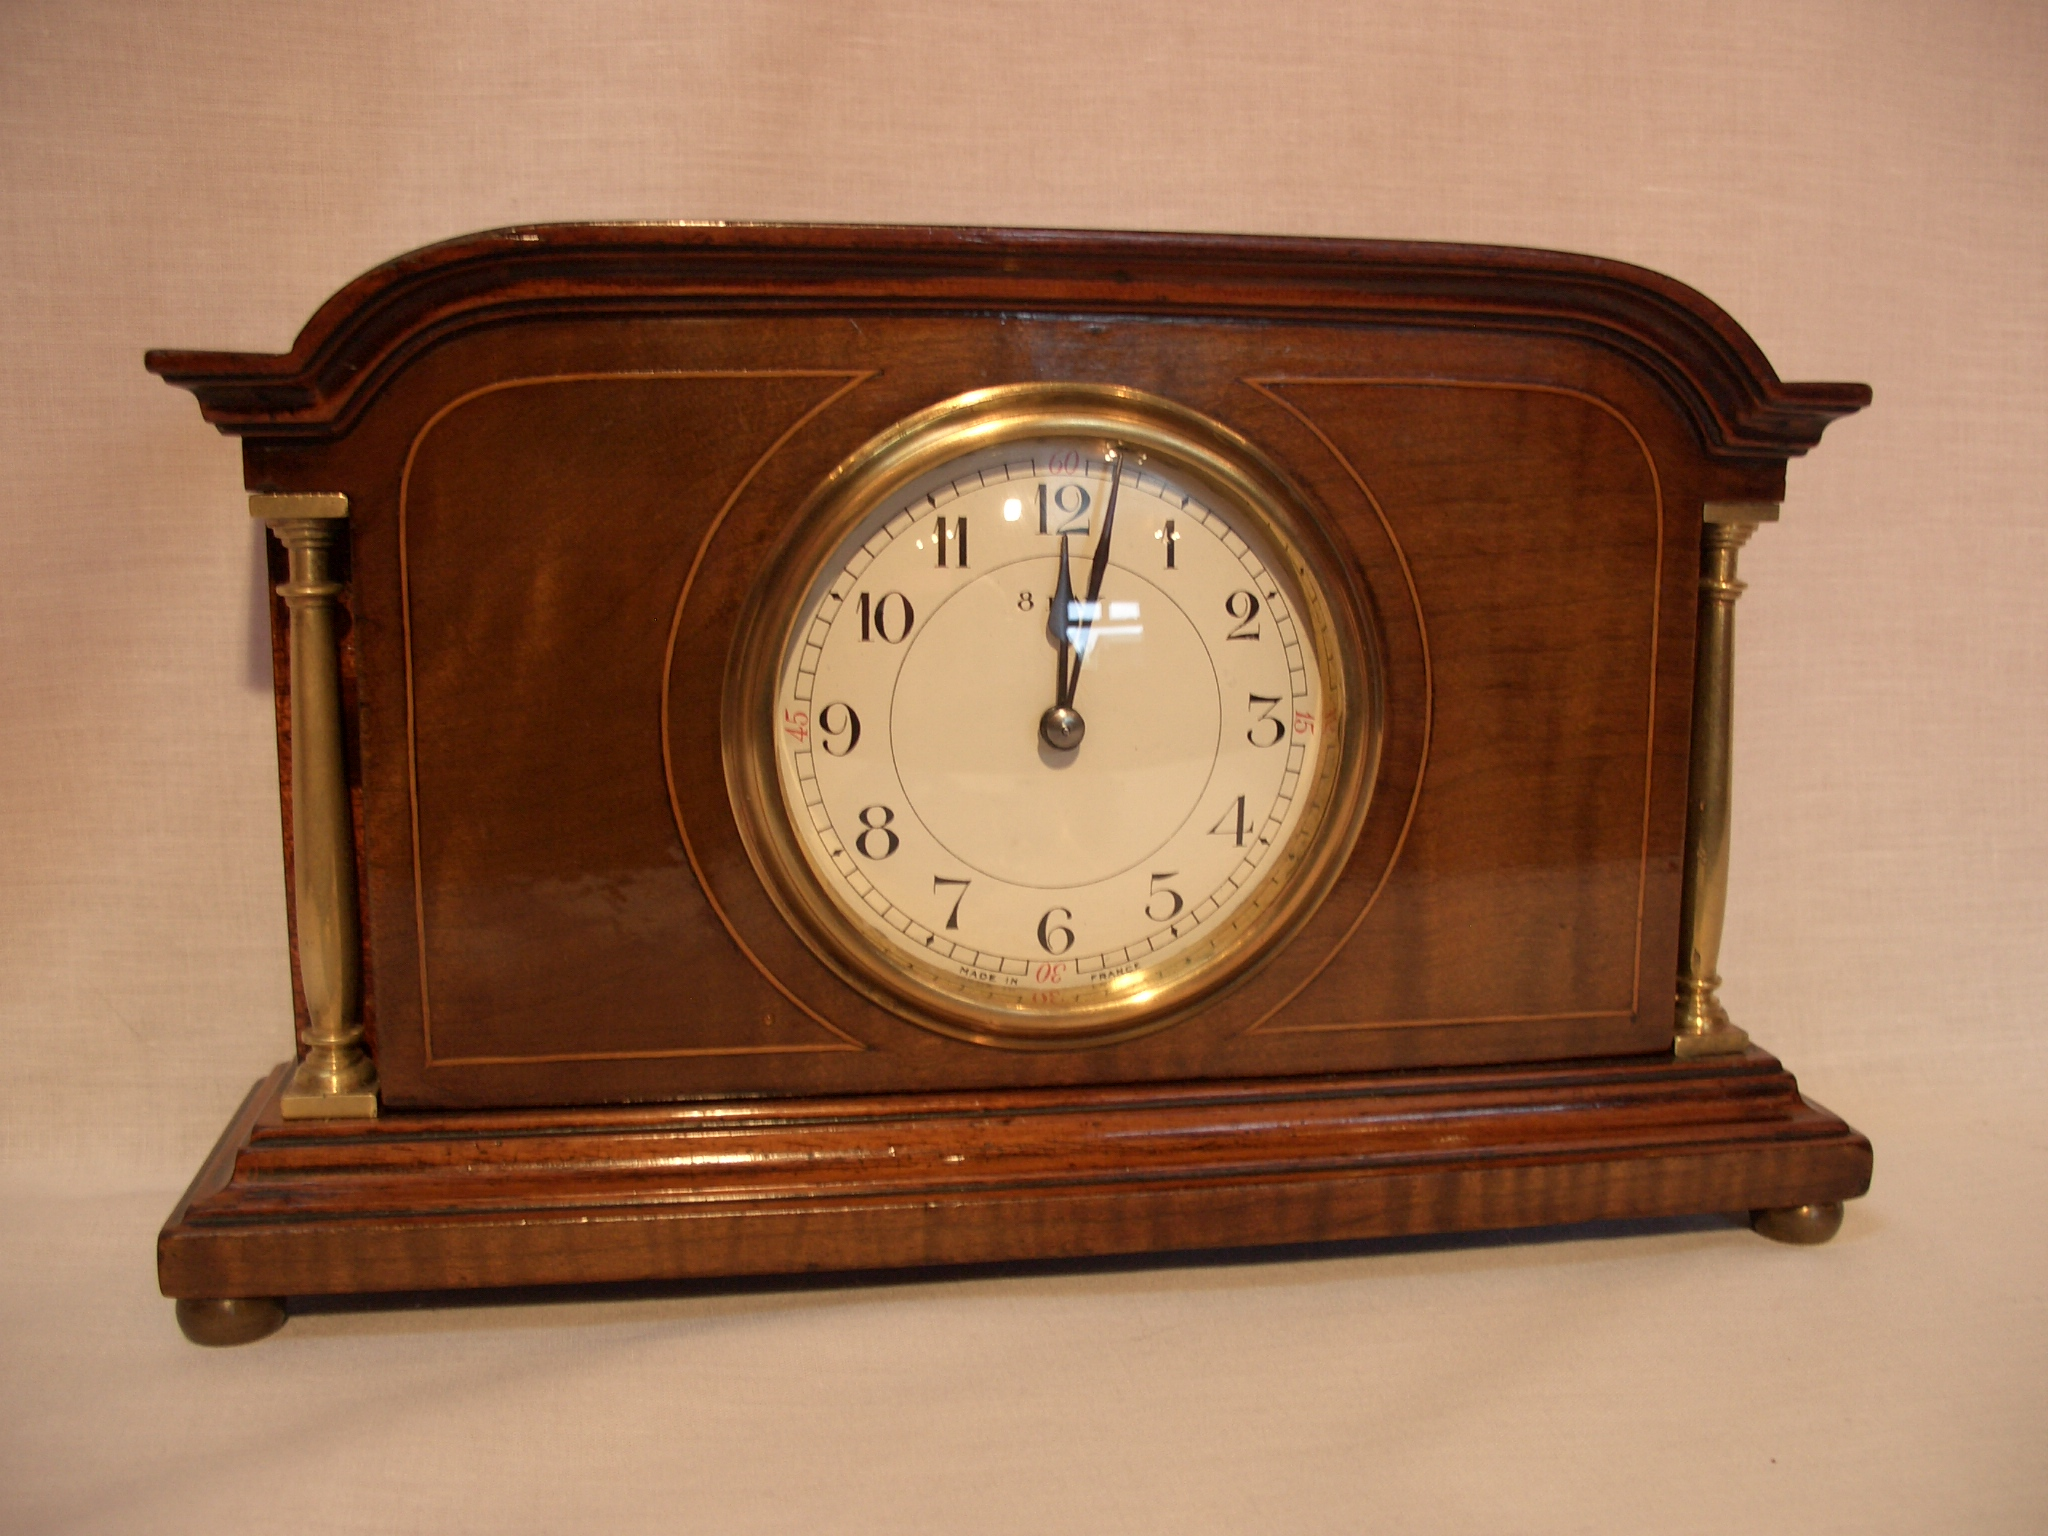 Edwardian mantel clock